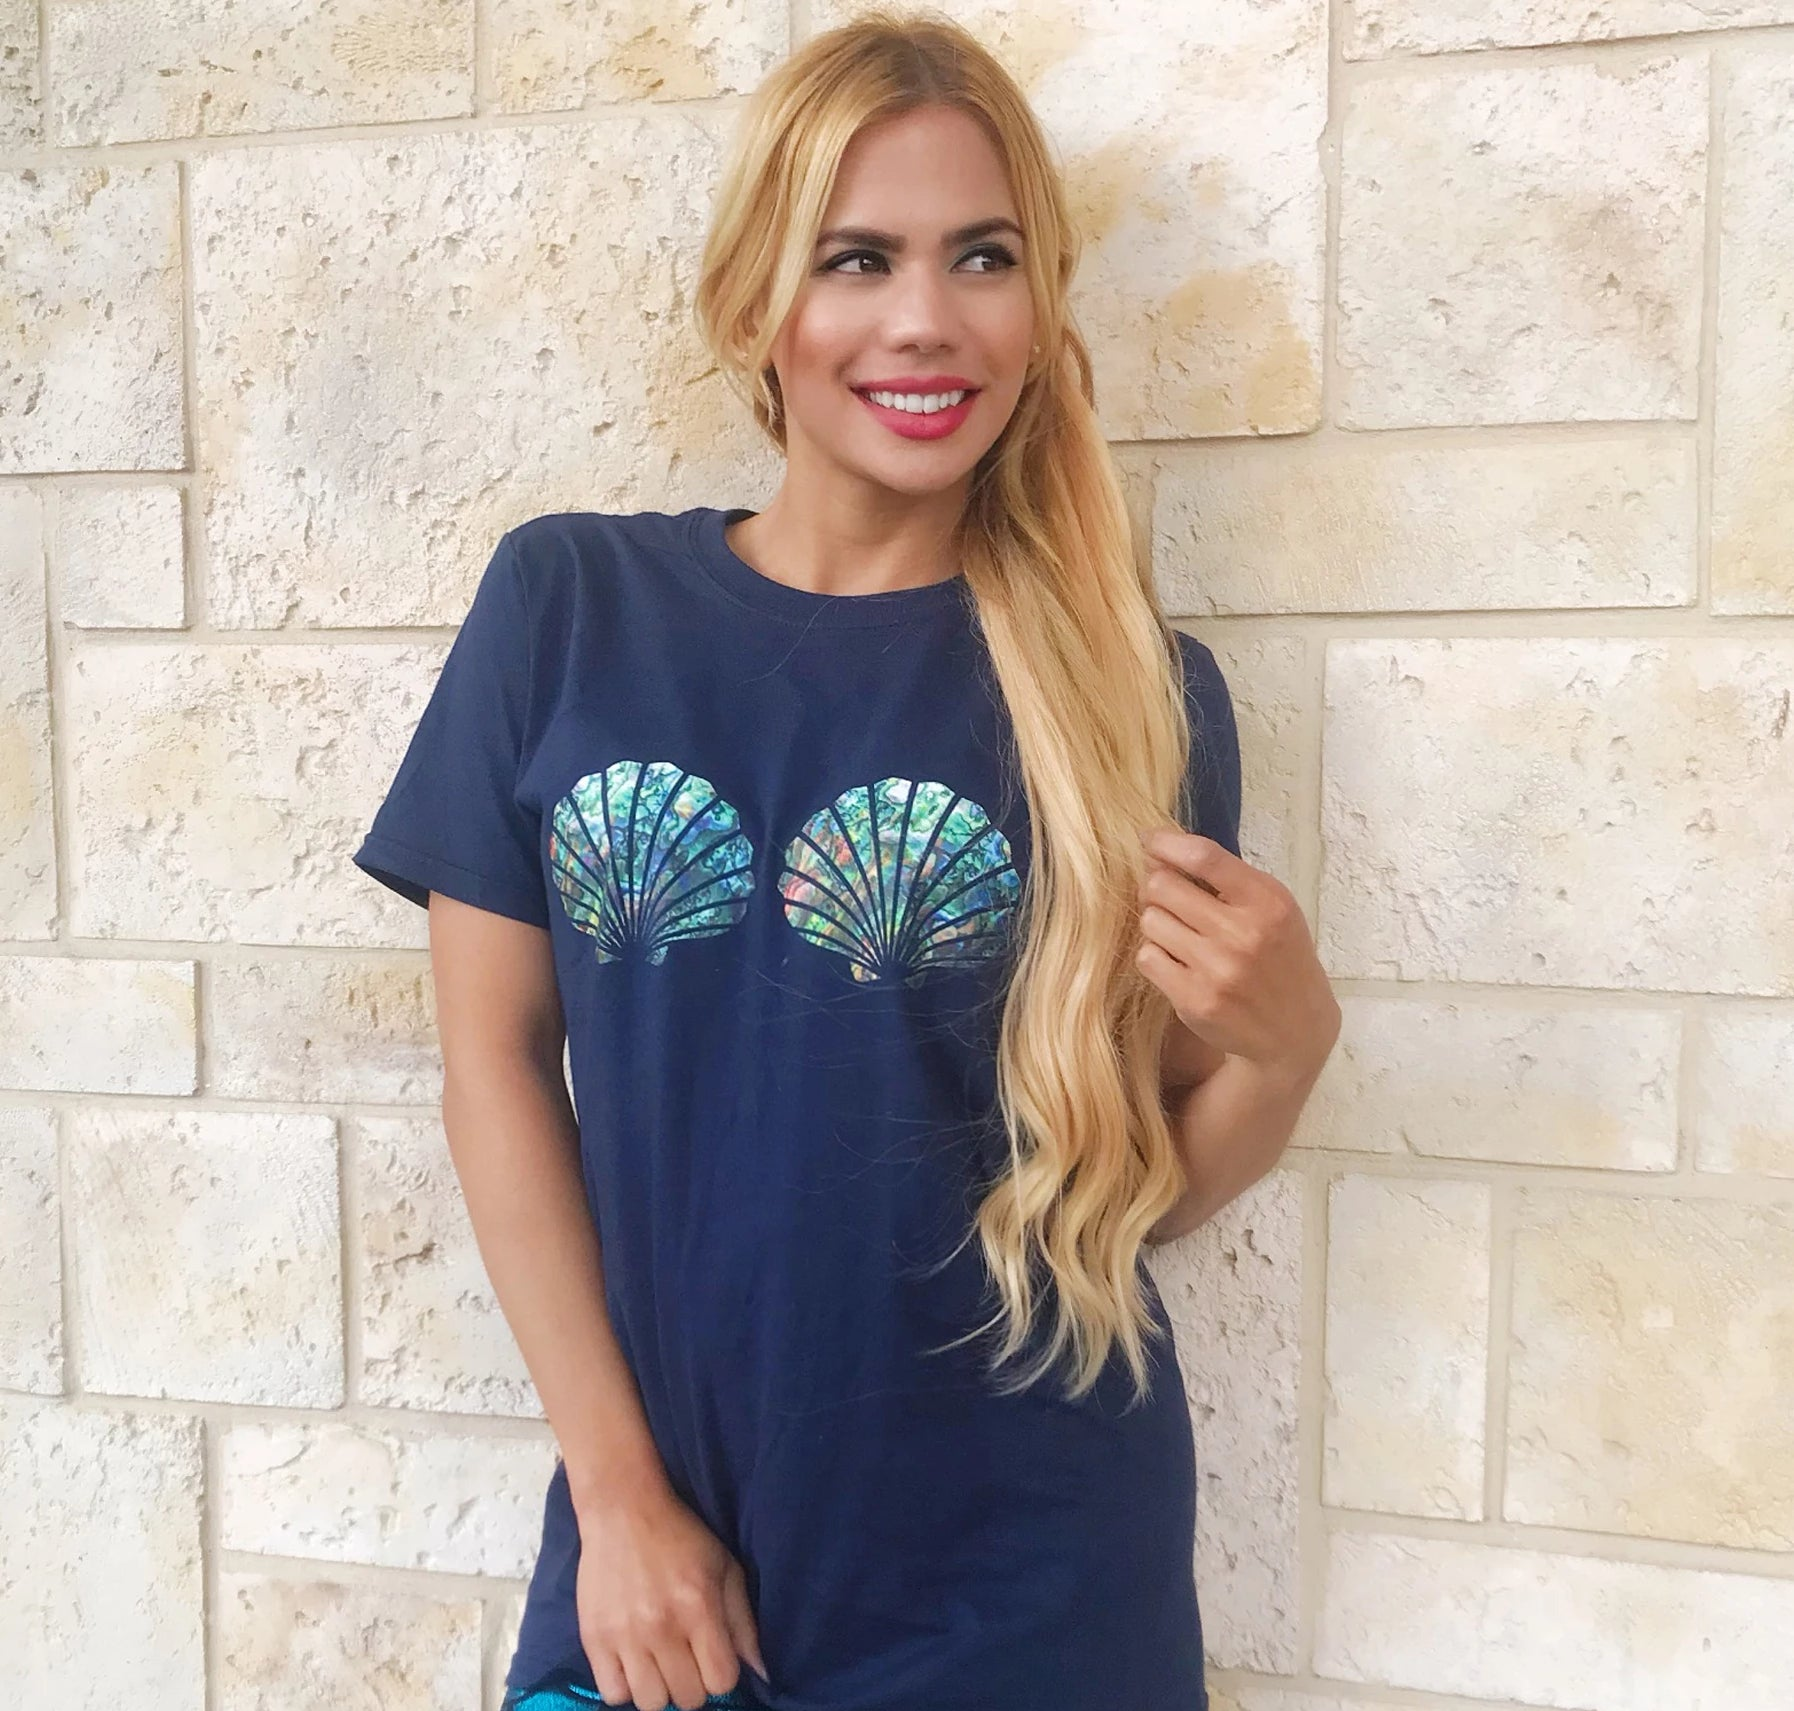 Abalone Mermaid Shell Top Boyfriend Tee - Cape Cali